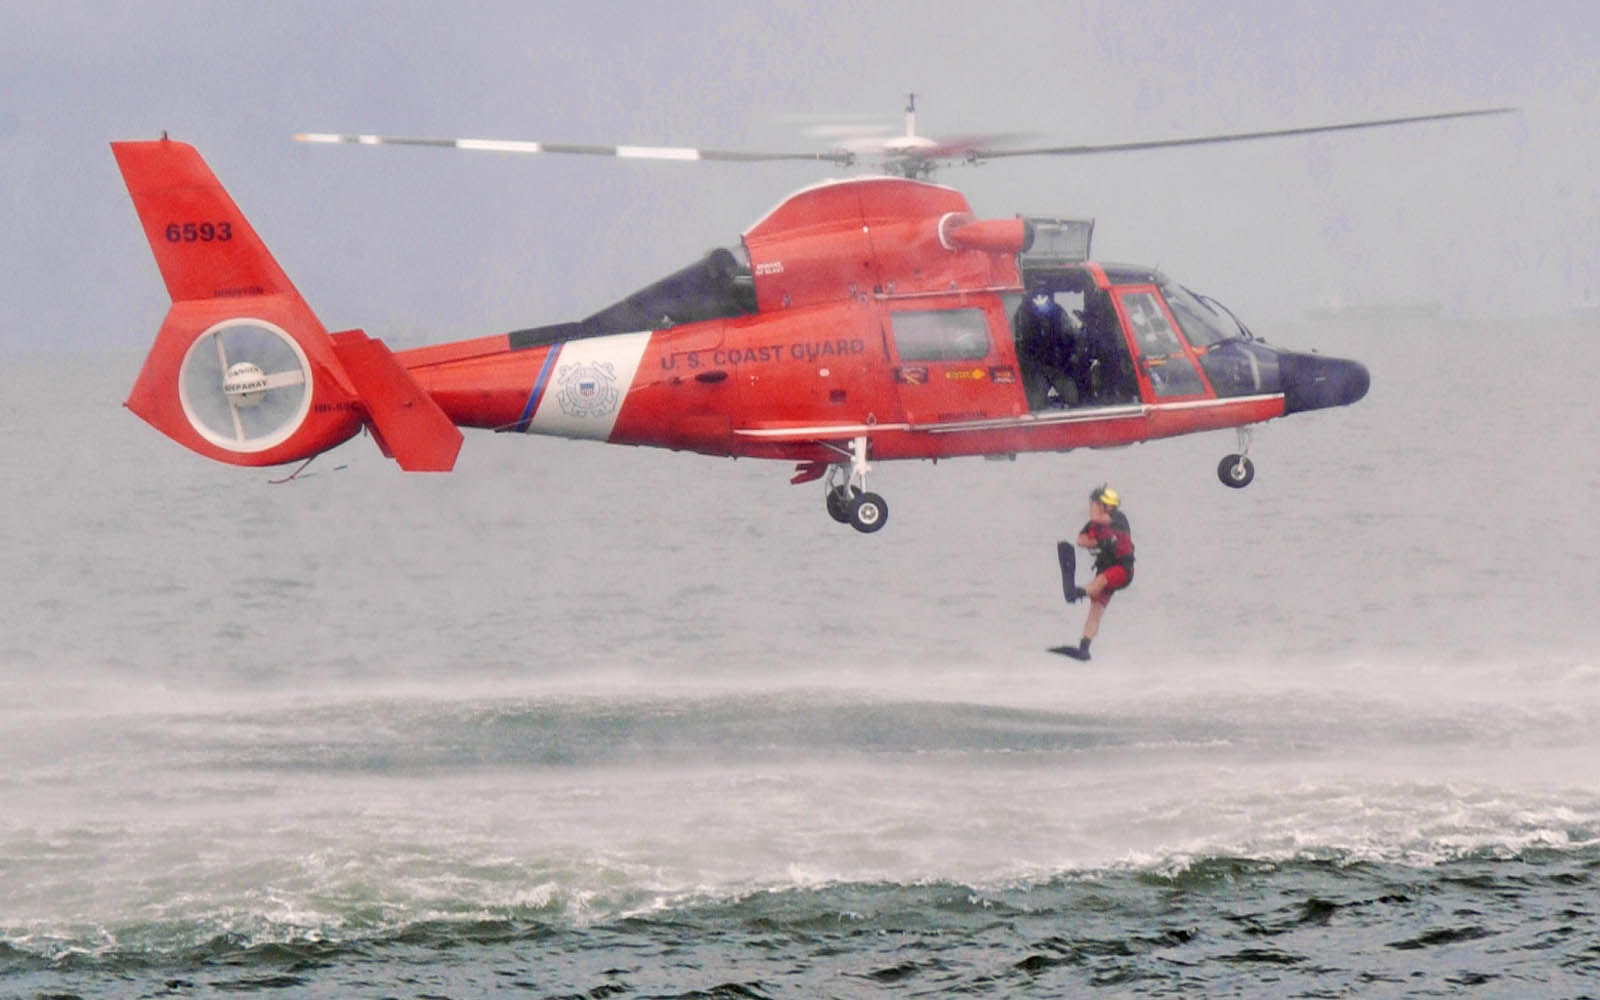 HH 65 Dolphin US Coast Guard Helicopter Wallpapers Desktop Wallpaper 1600x1000